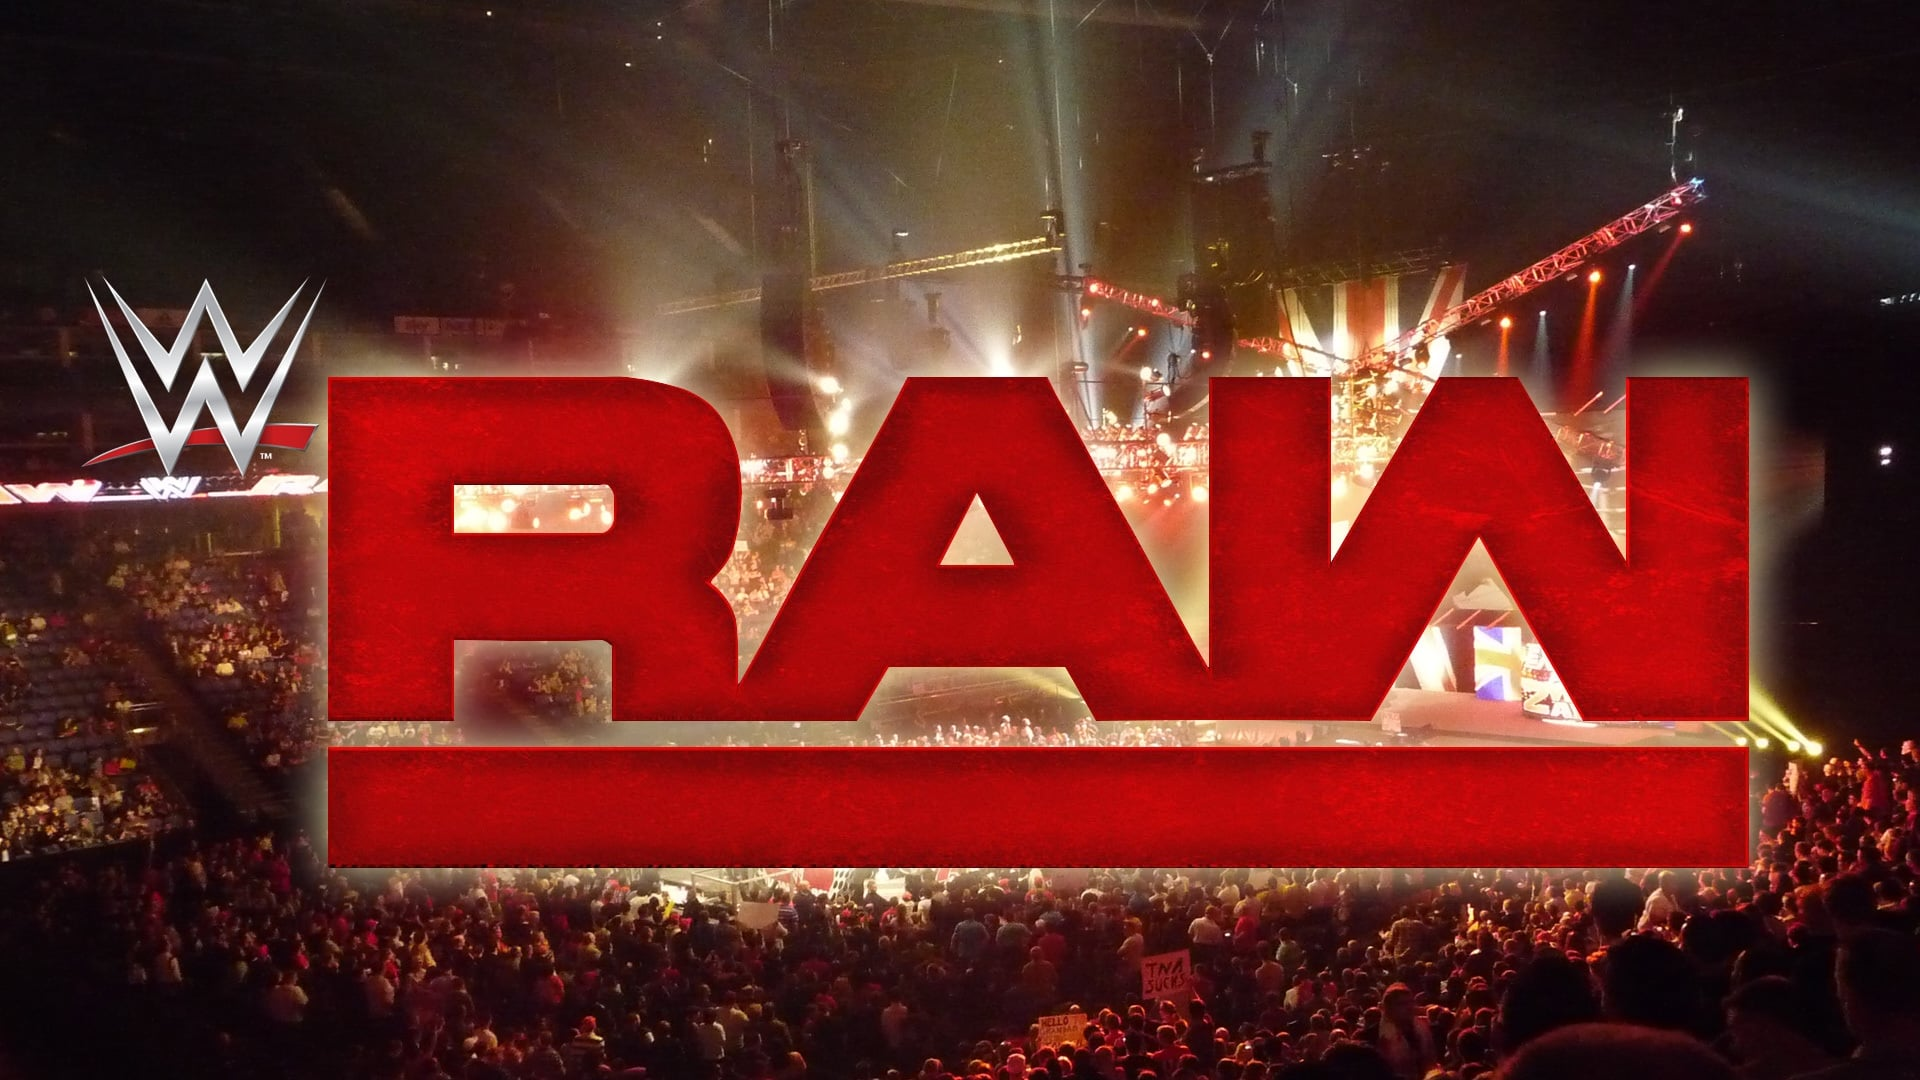 WWE Raw - Season 23 Episode 34 : August 24, 2015 (Brooklyn, NY)